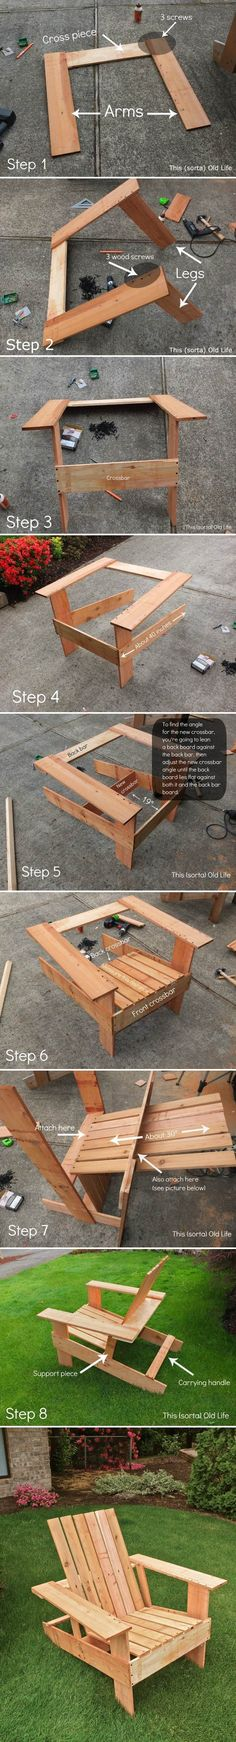 These free Adirondack chair plans will help you build a great looking chair in just a few hours. It will look great on your deck, porch, or yard #ChairDIY